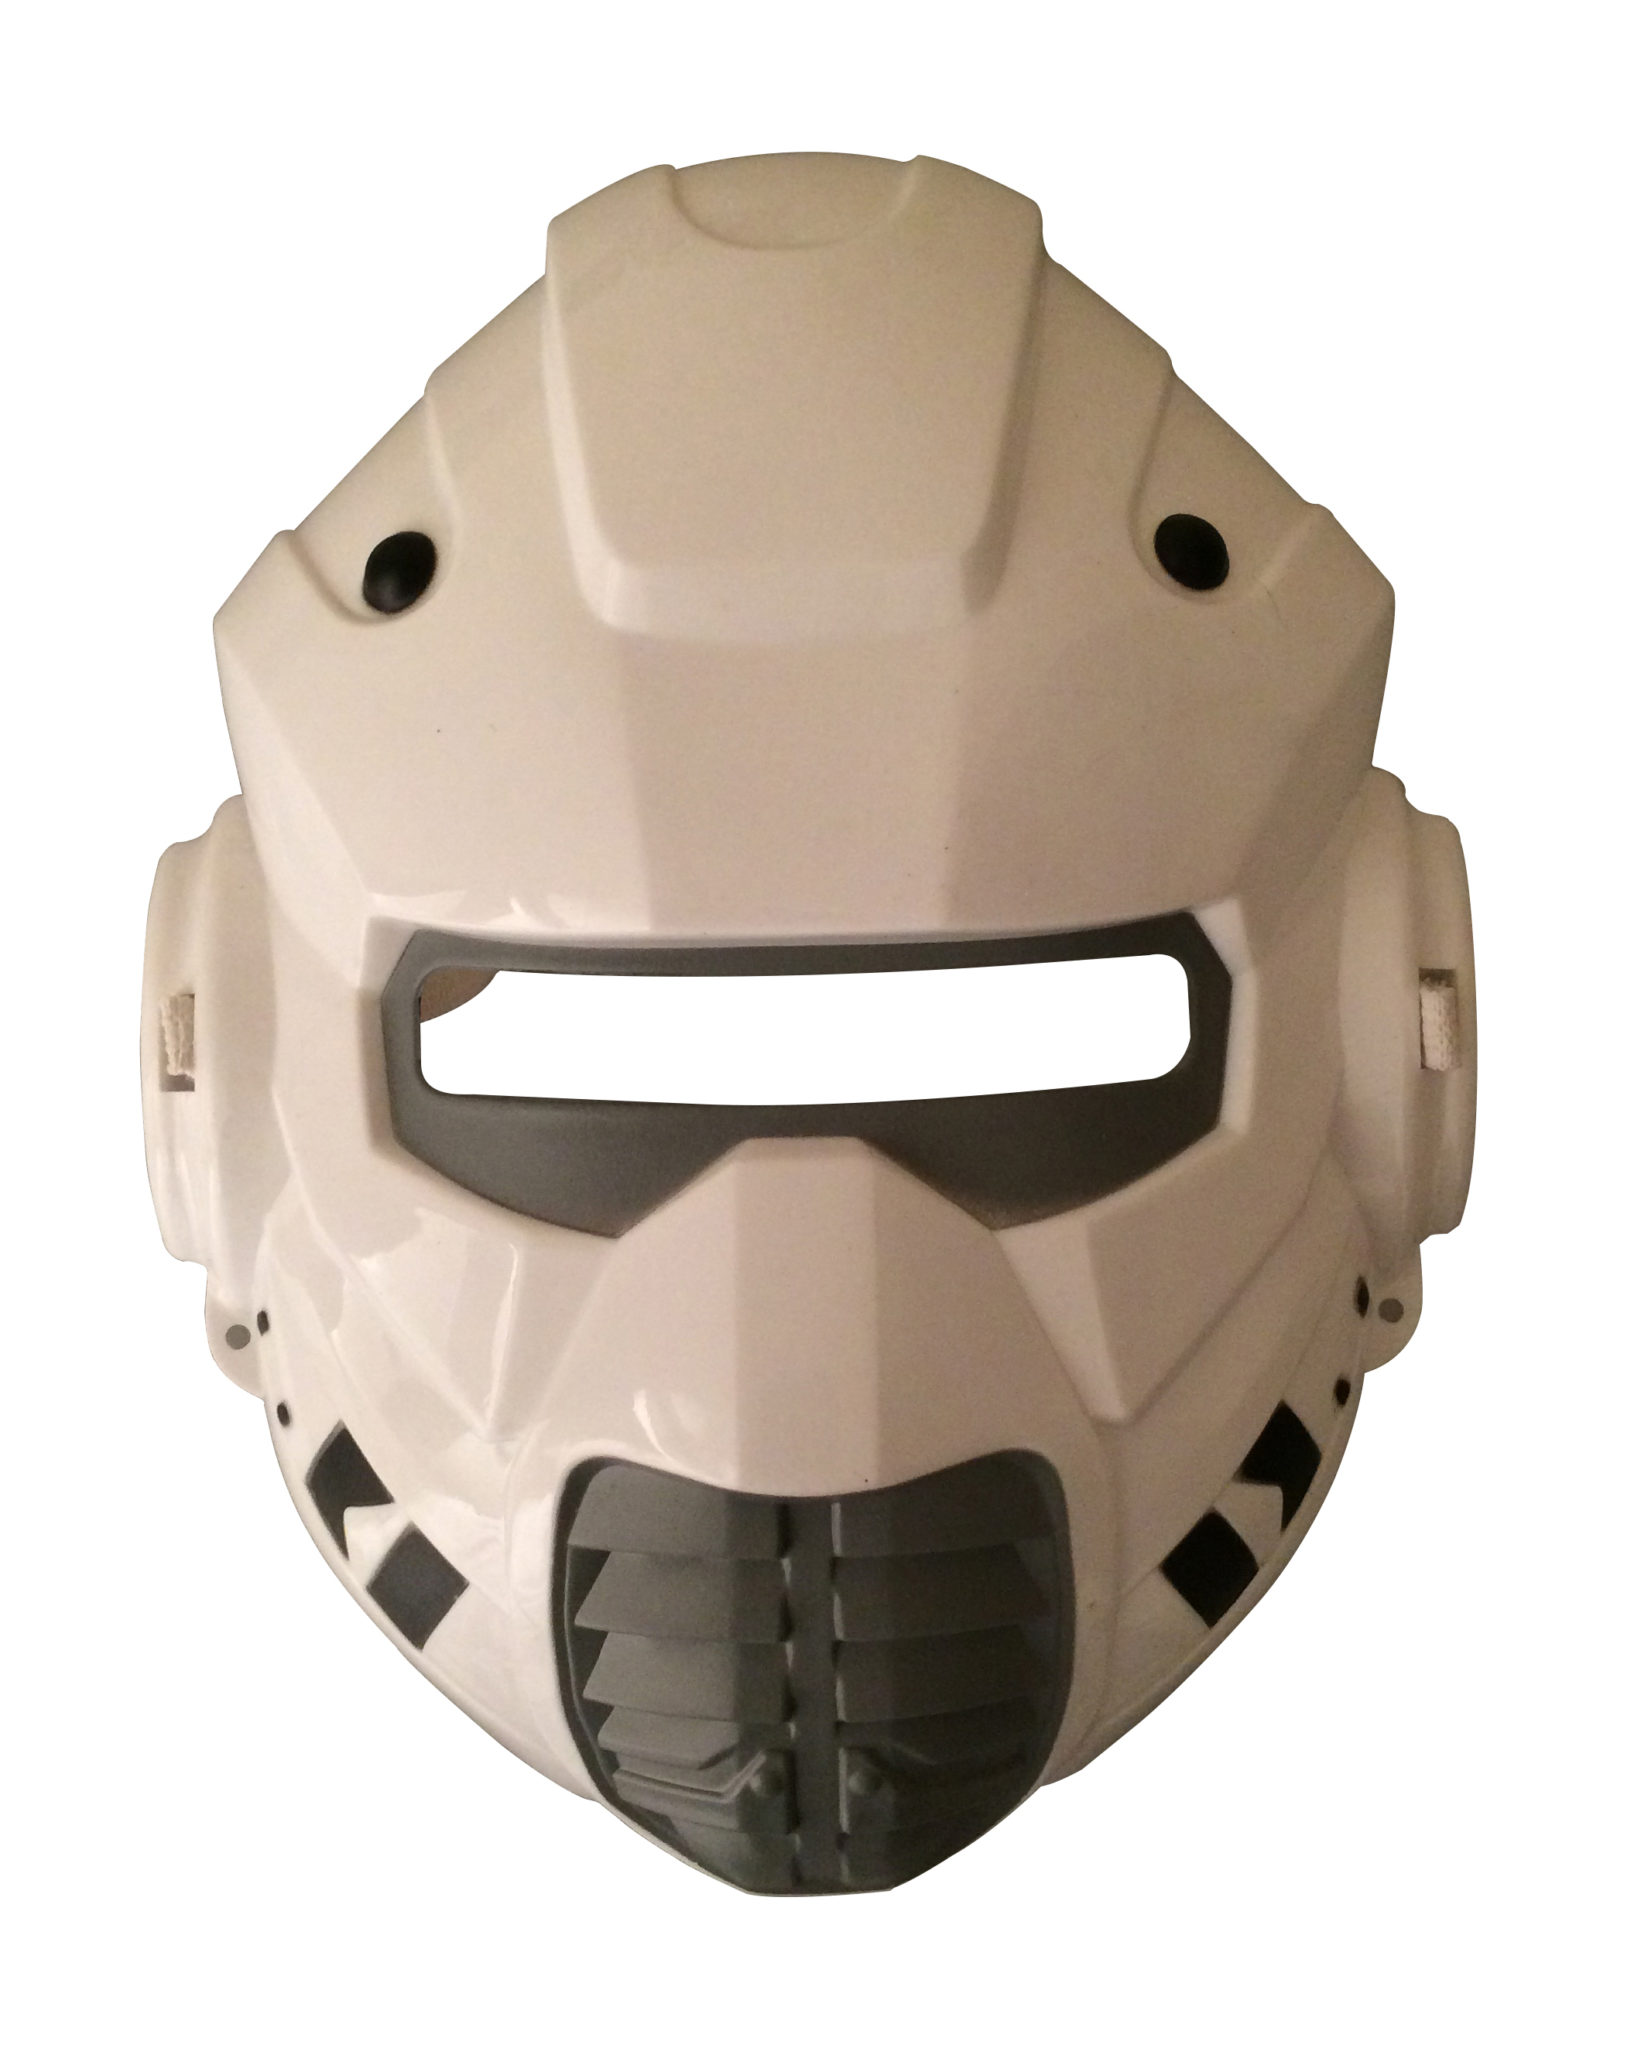 Space Wars White Mask